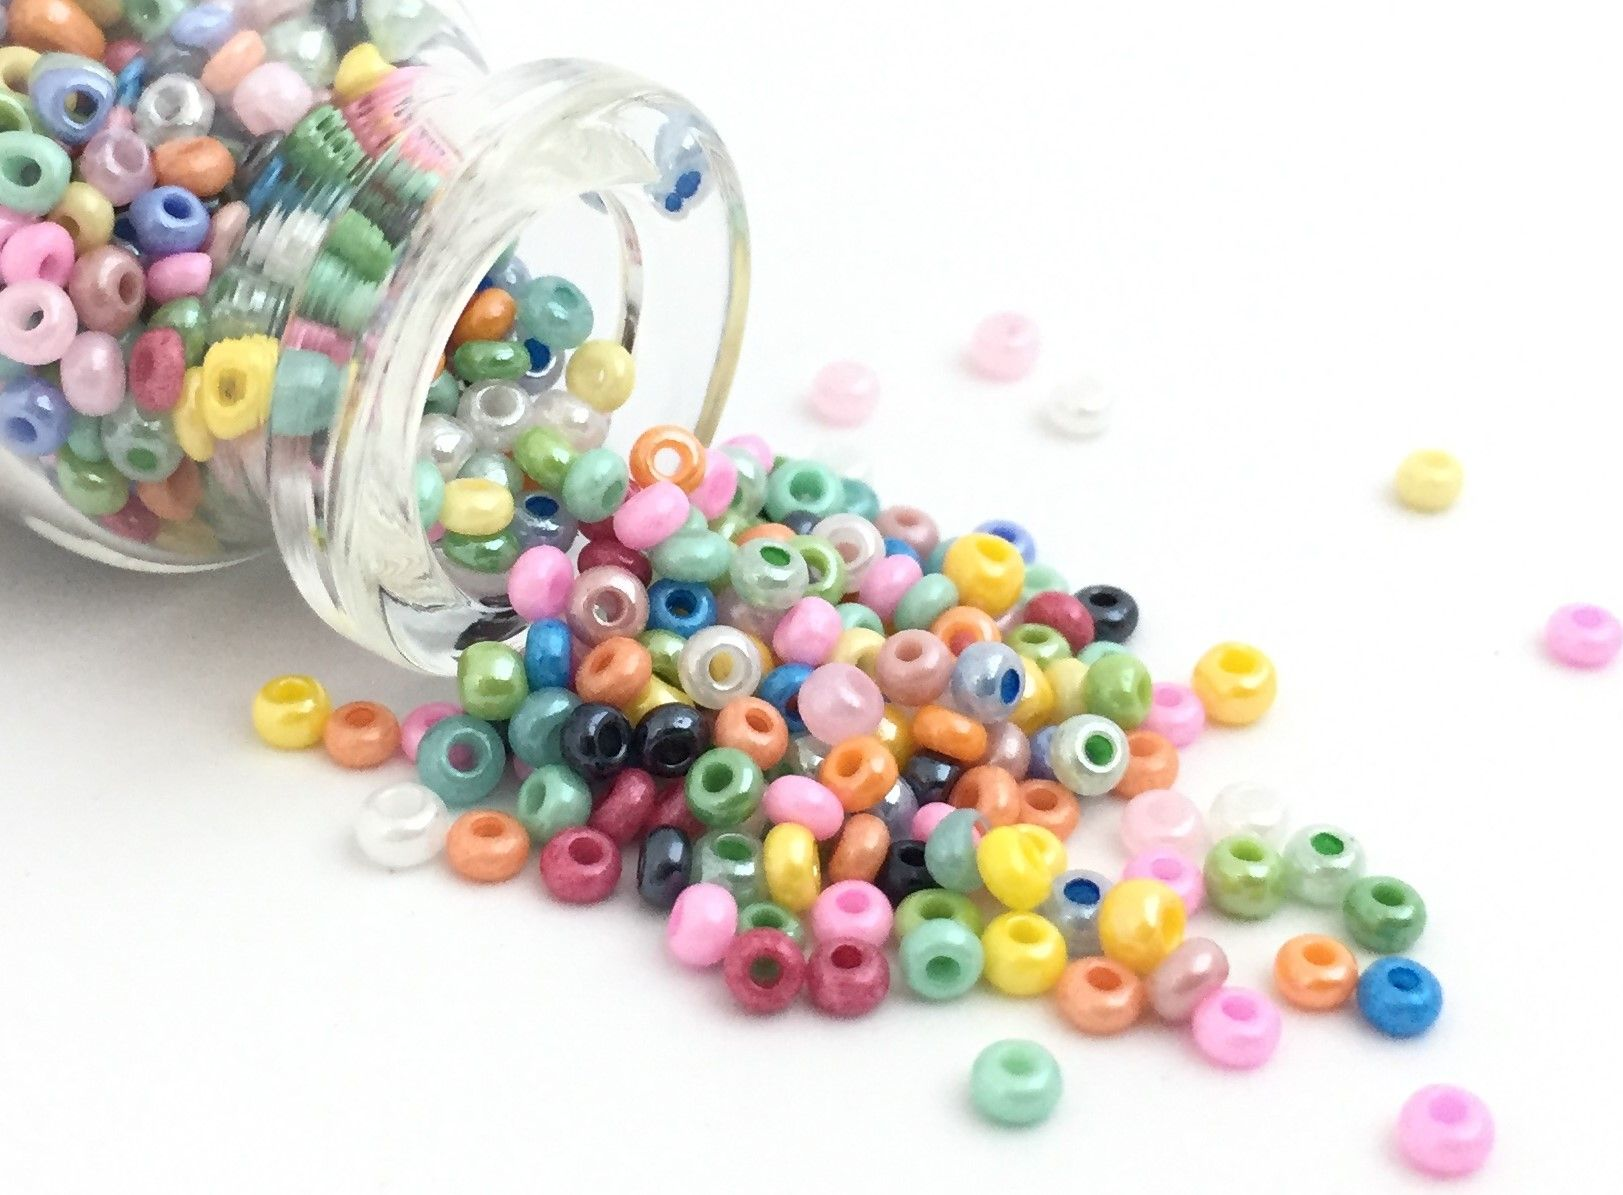 ceylon in buy butterfly beads white glass seed bags pearl bulk bead collections jewellery